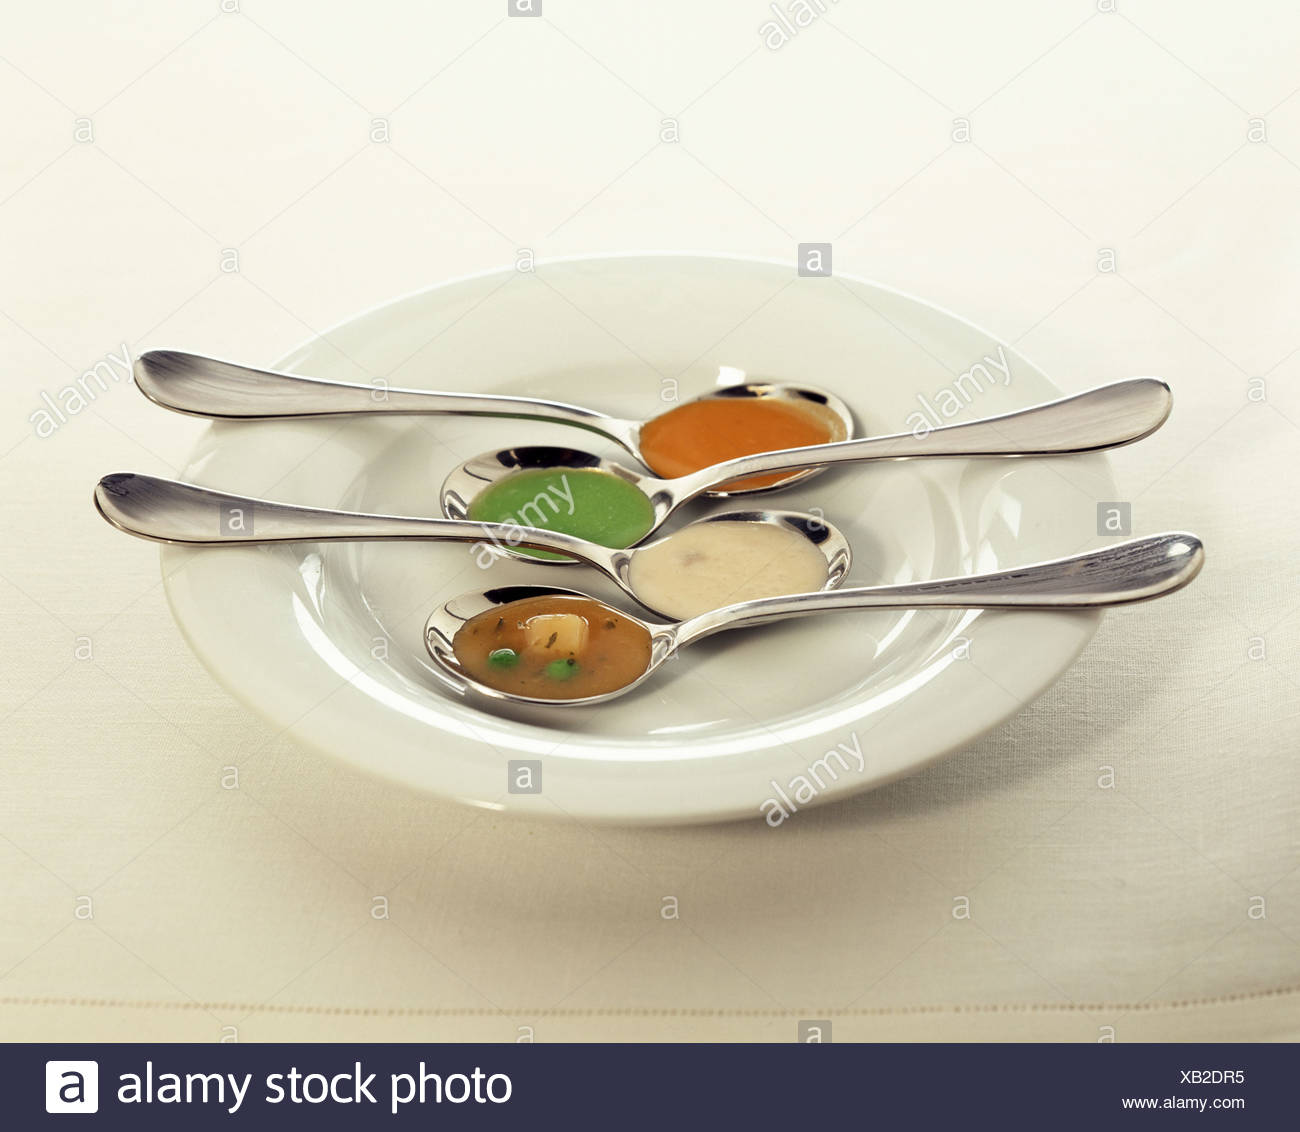 spoonfuls of soup - Stock Image